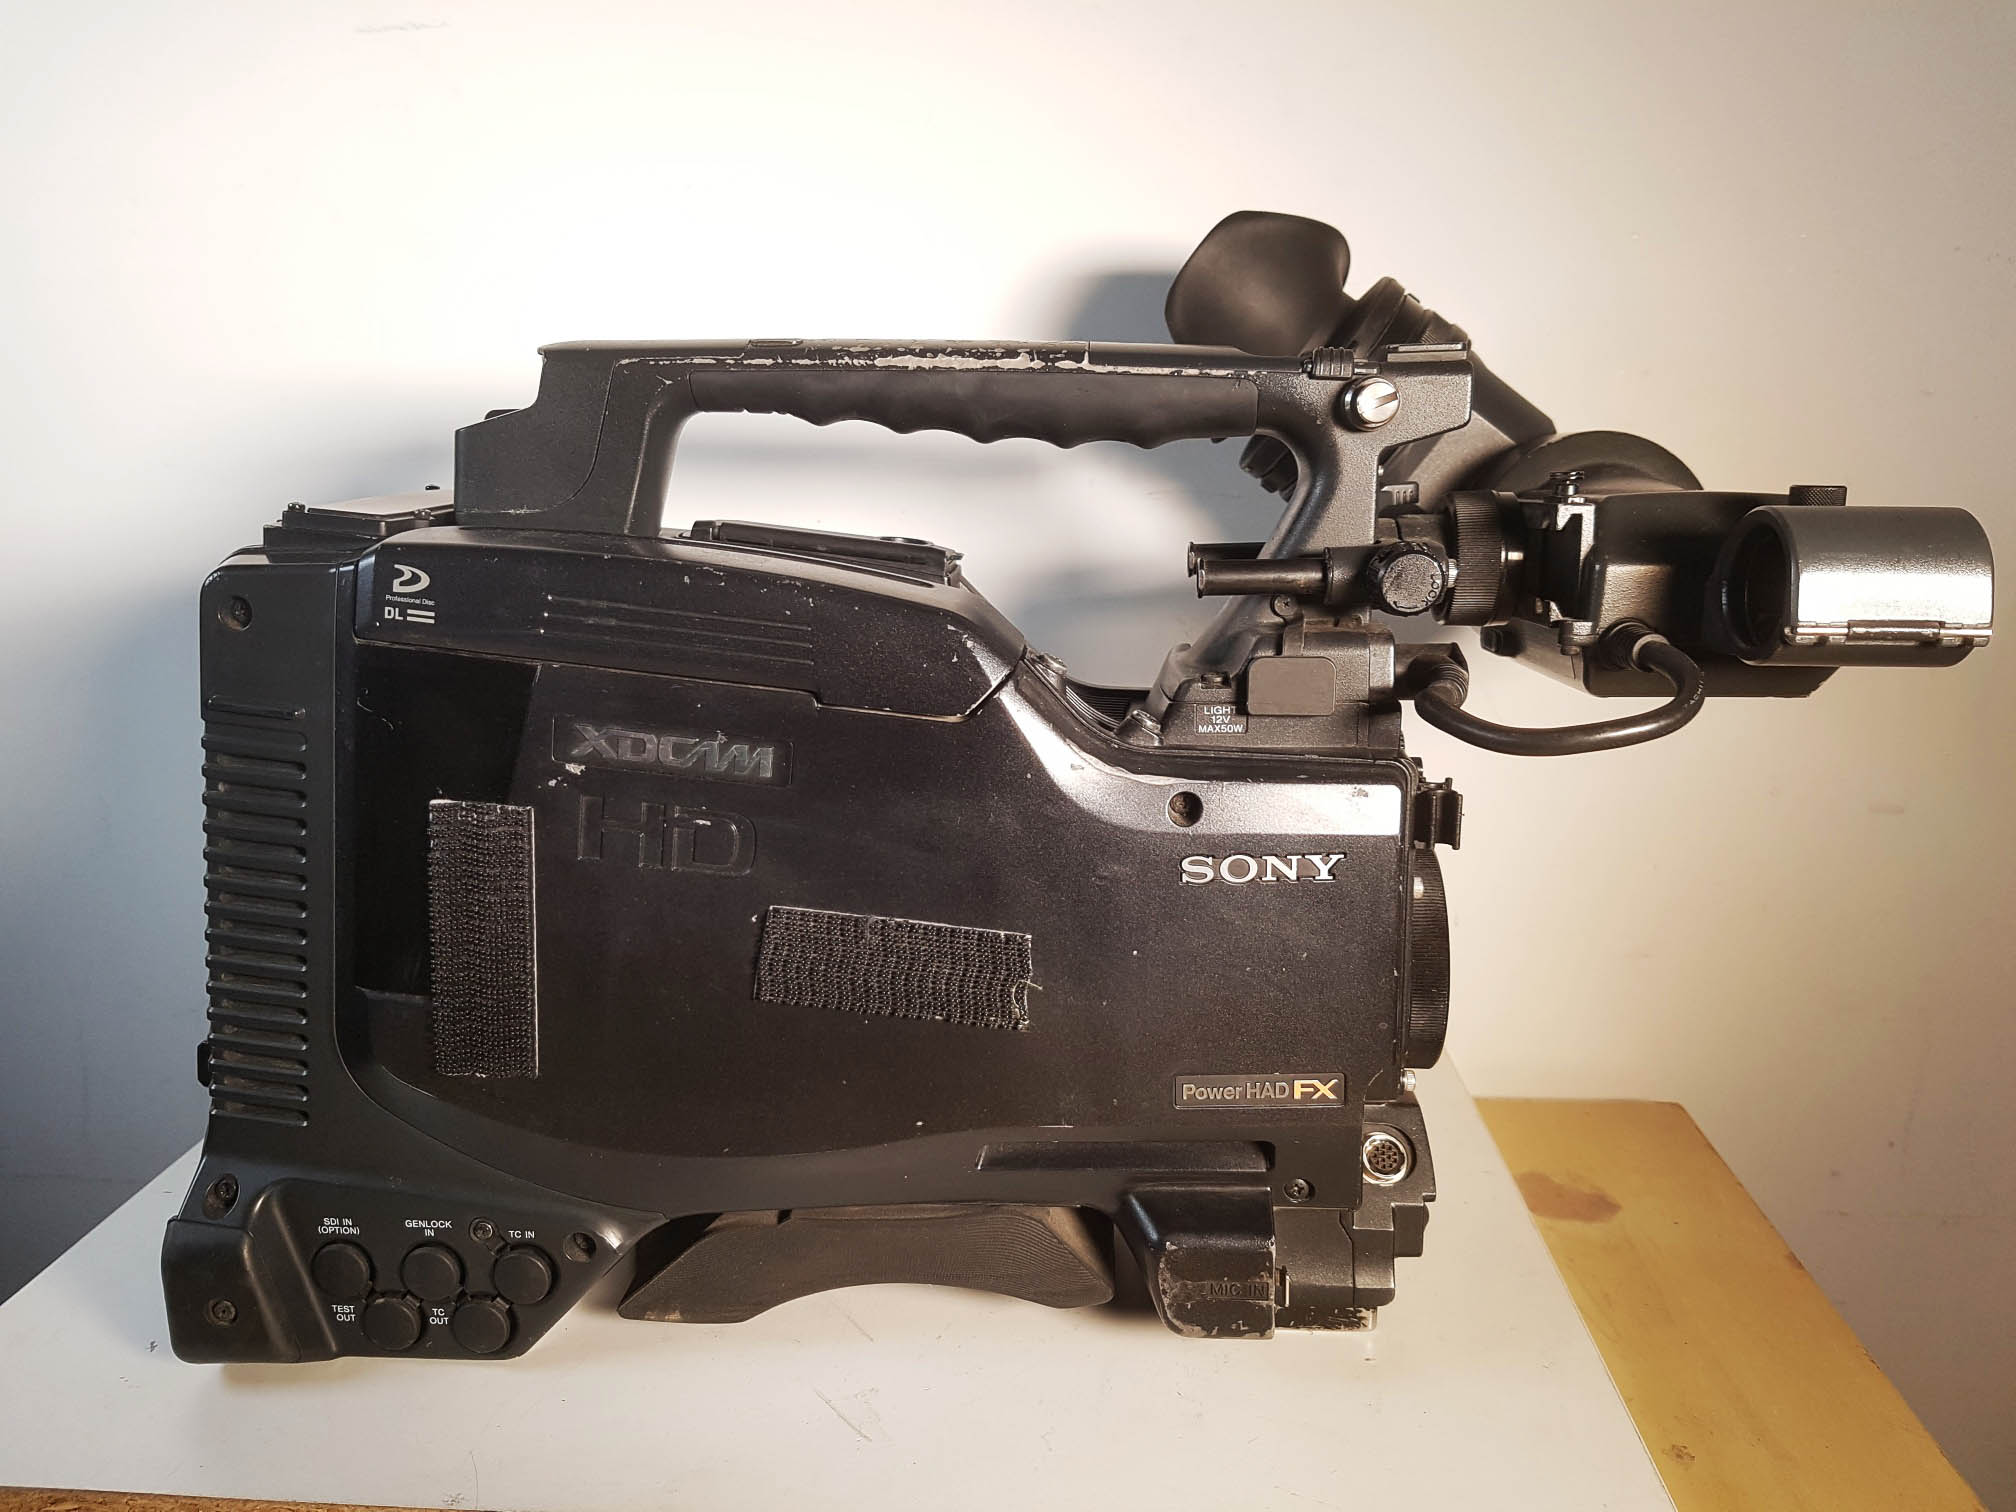 SONY PDW700 + HDVF-20A + SD option - Image #1